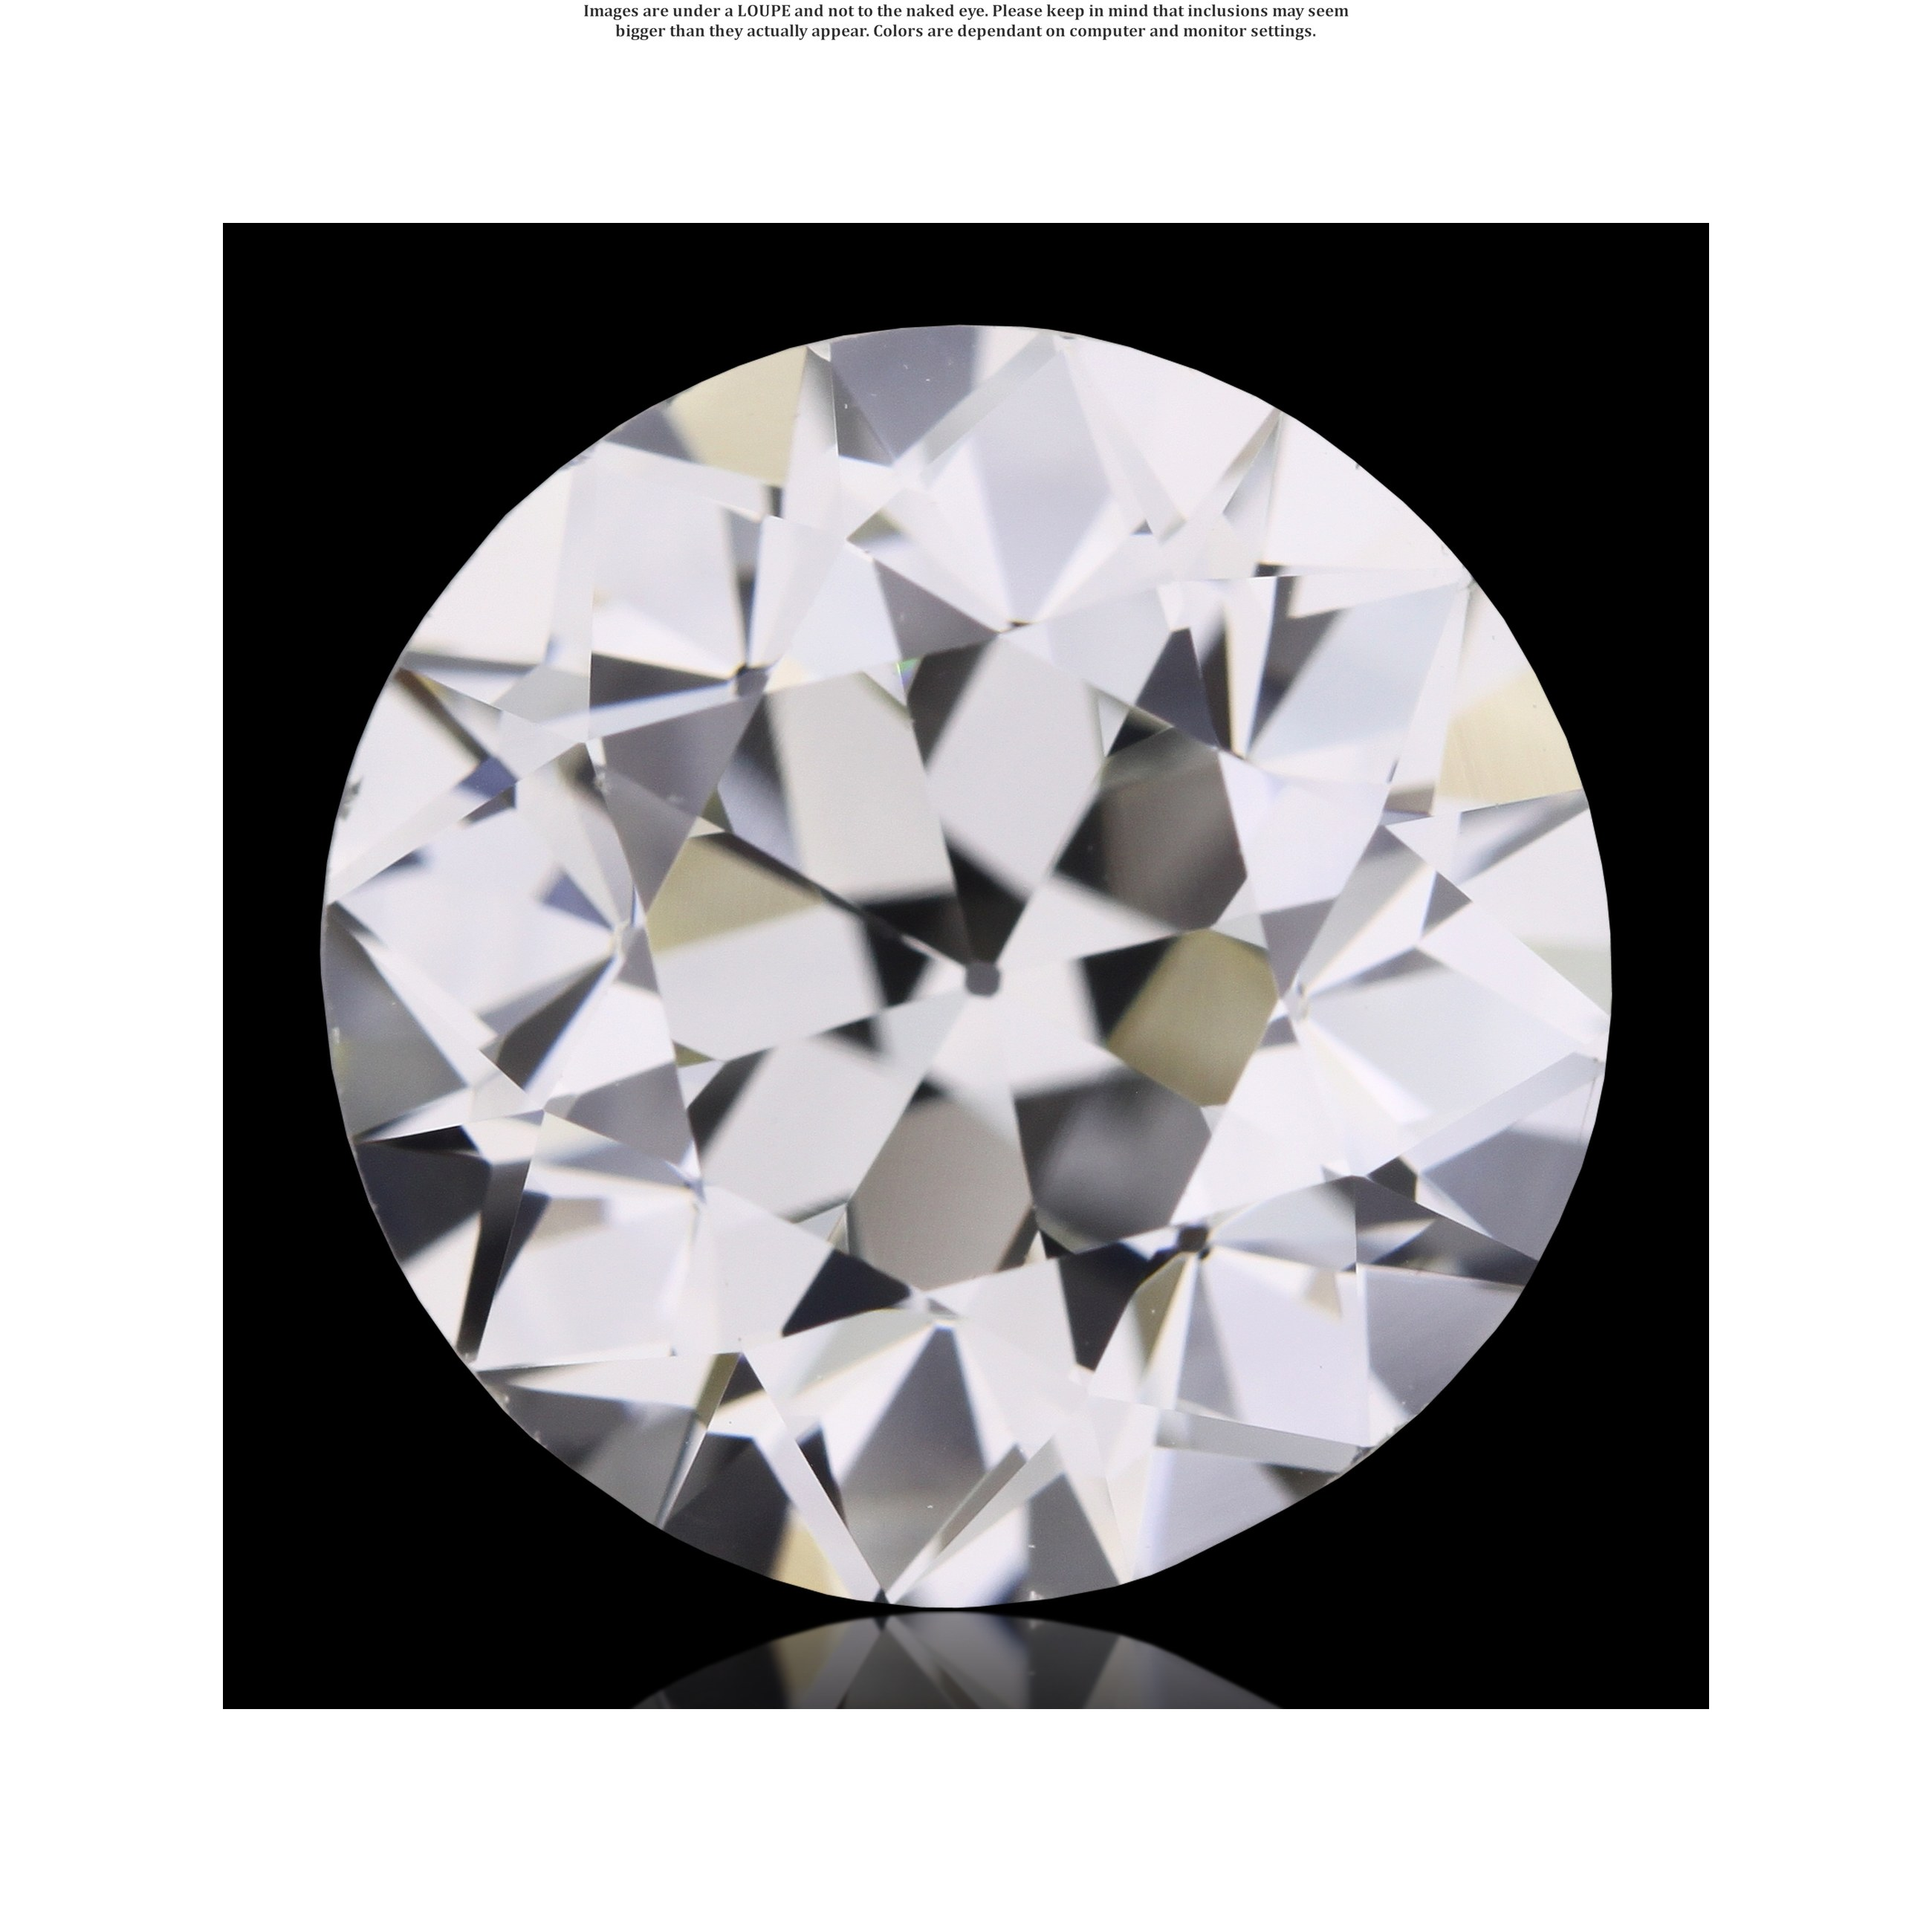 Stowes Jewelers - Diamond Image - OM0002